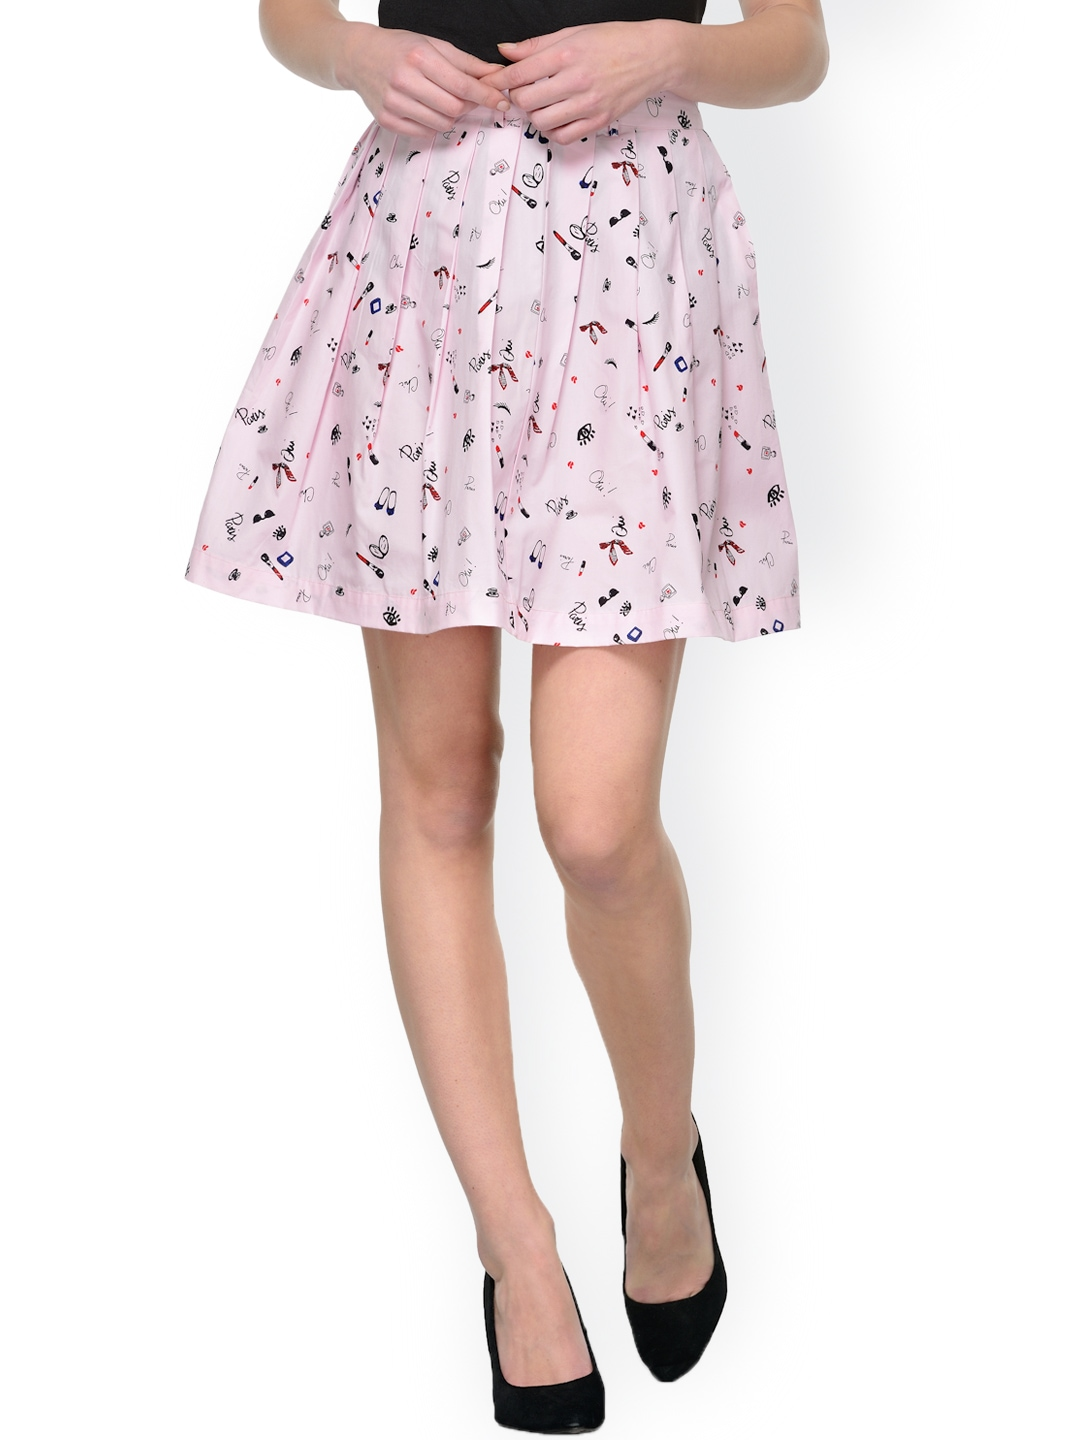 Street 9 Pink Pleated Skirt Price Myntra Skirts Deals At